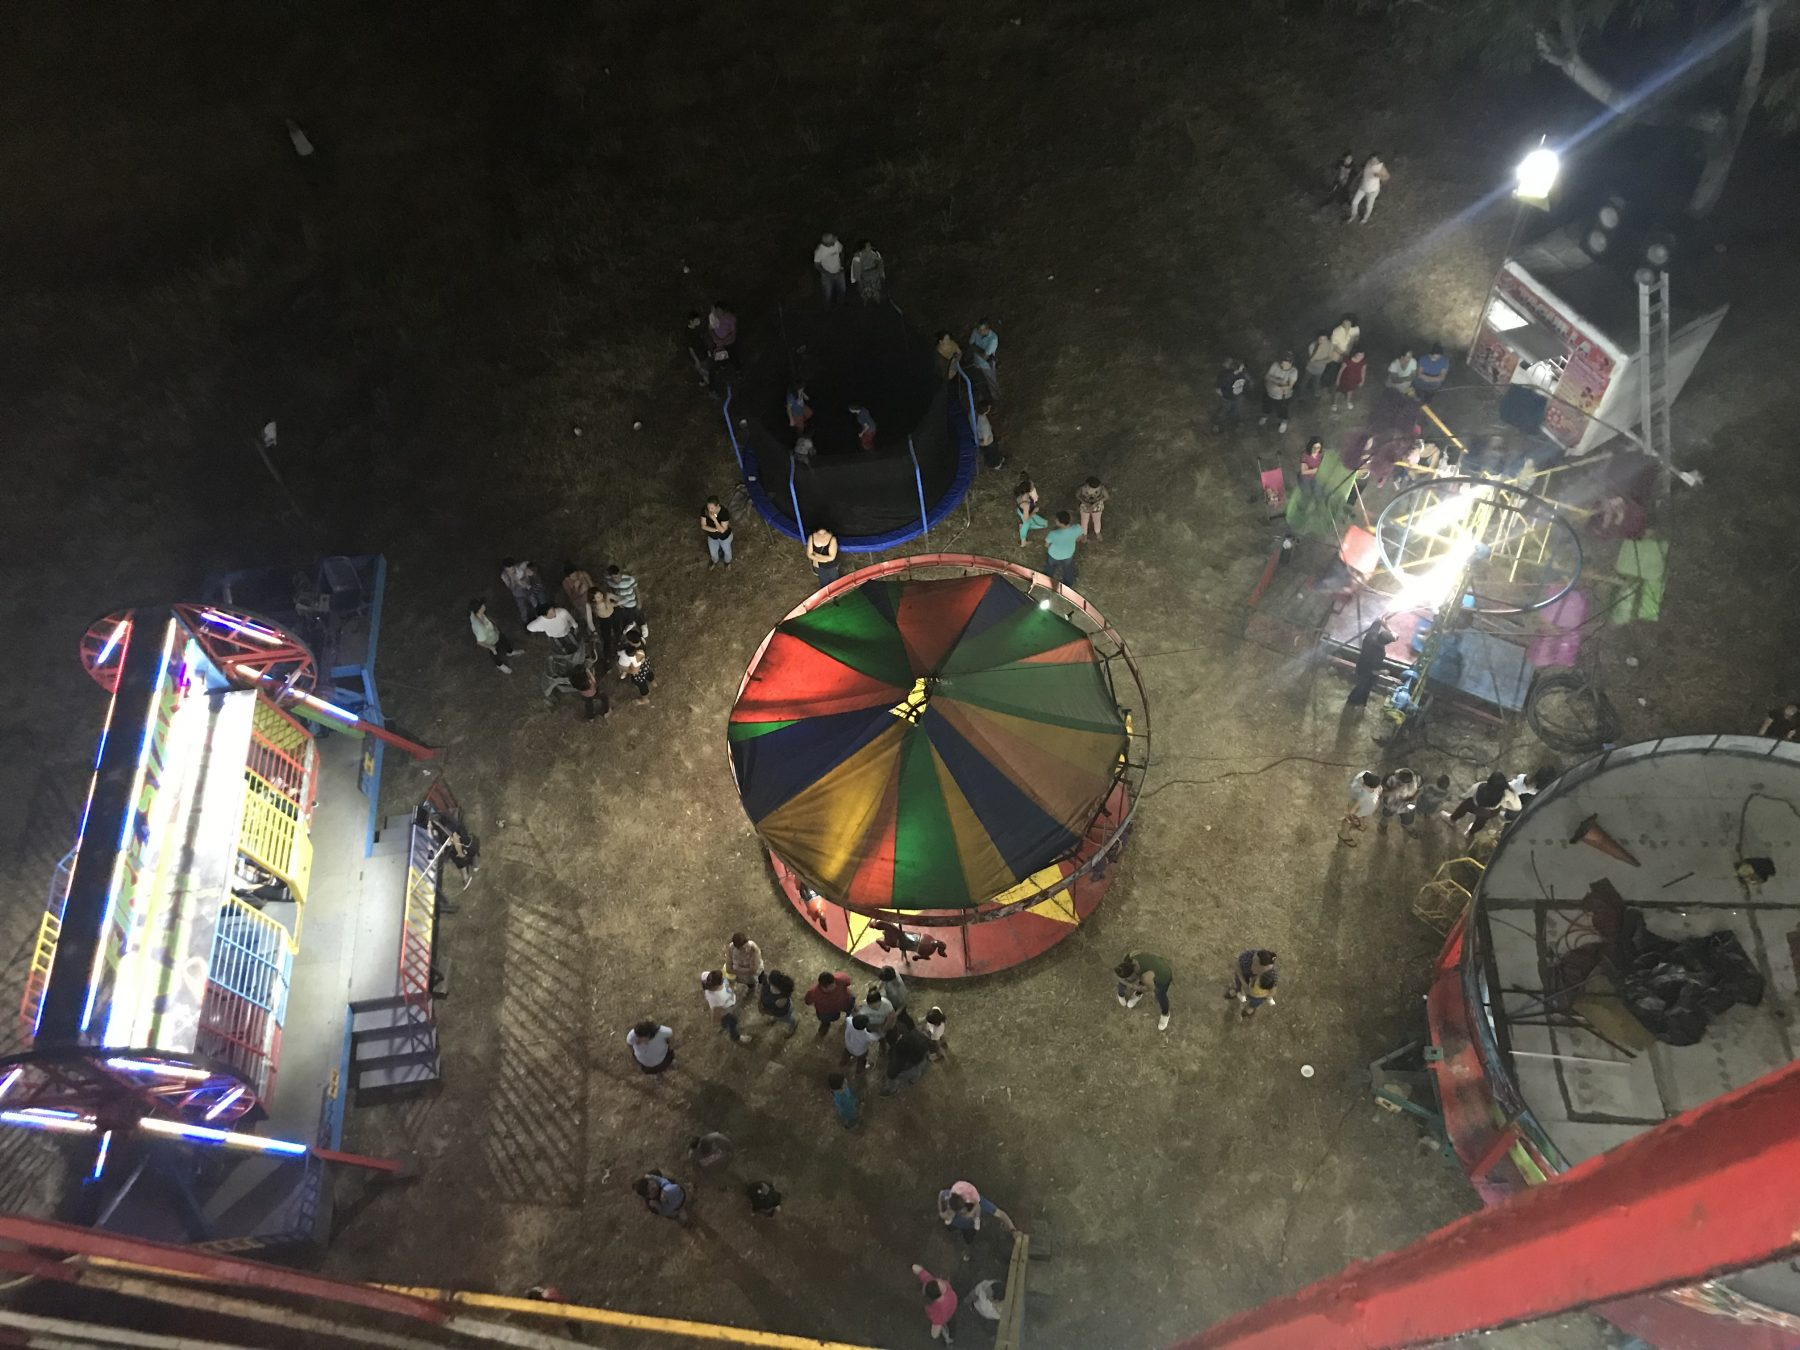 Fun at the Fairgrounds of Ilopango, San Salvador